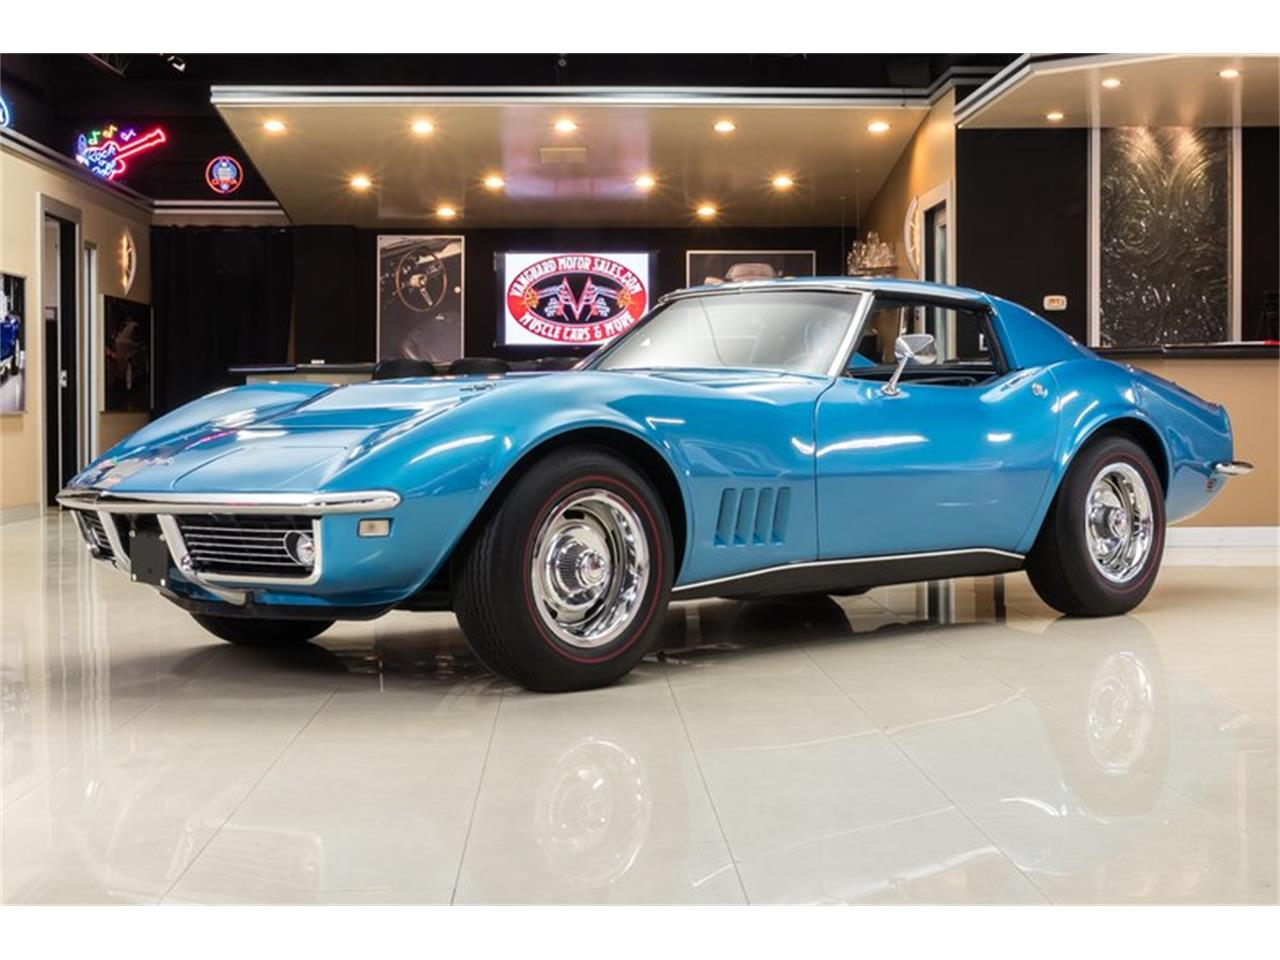 Large Picture of Classic 1968 Chevrolet Corvette located in Michigan - $89,900.00 Offered by Vanguard Motor Sales - NE3R